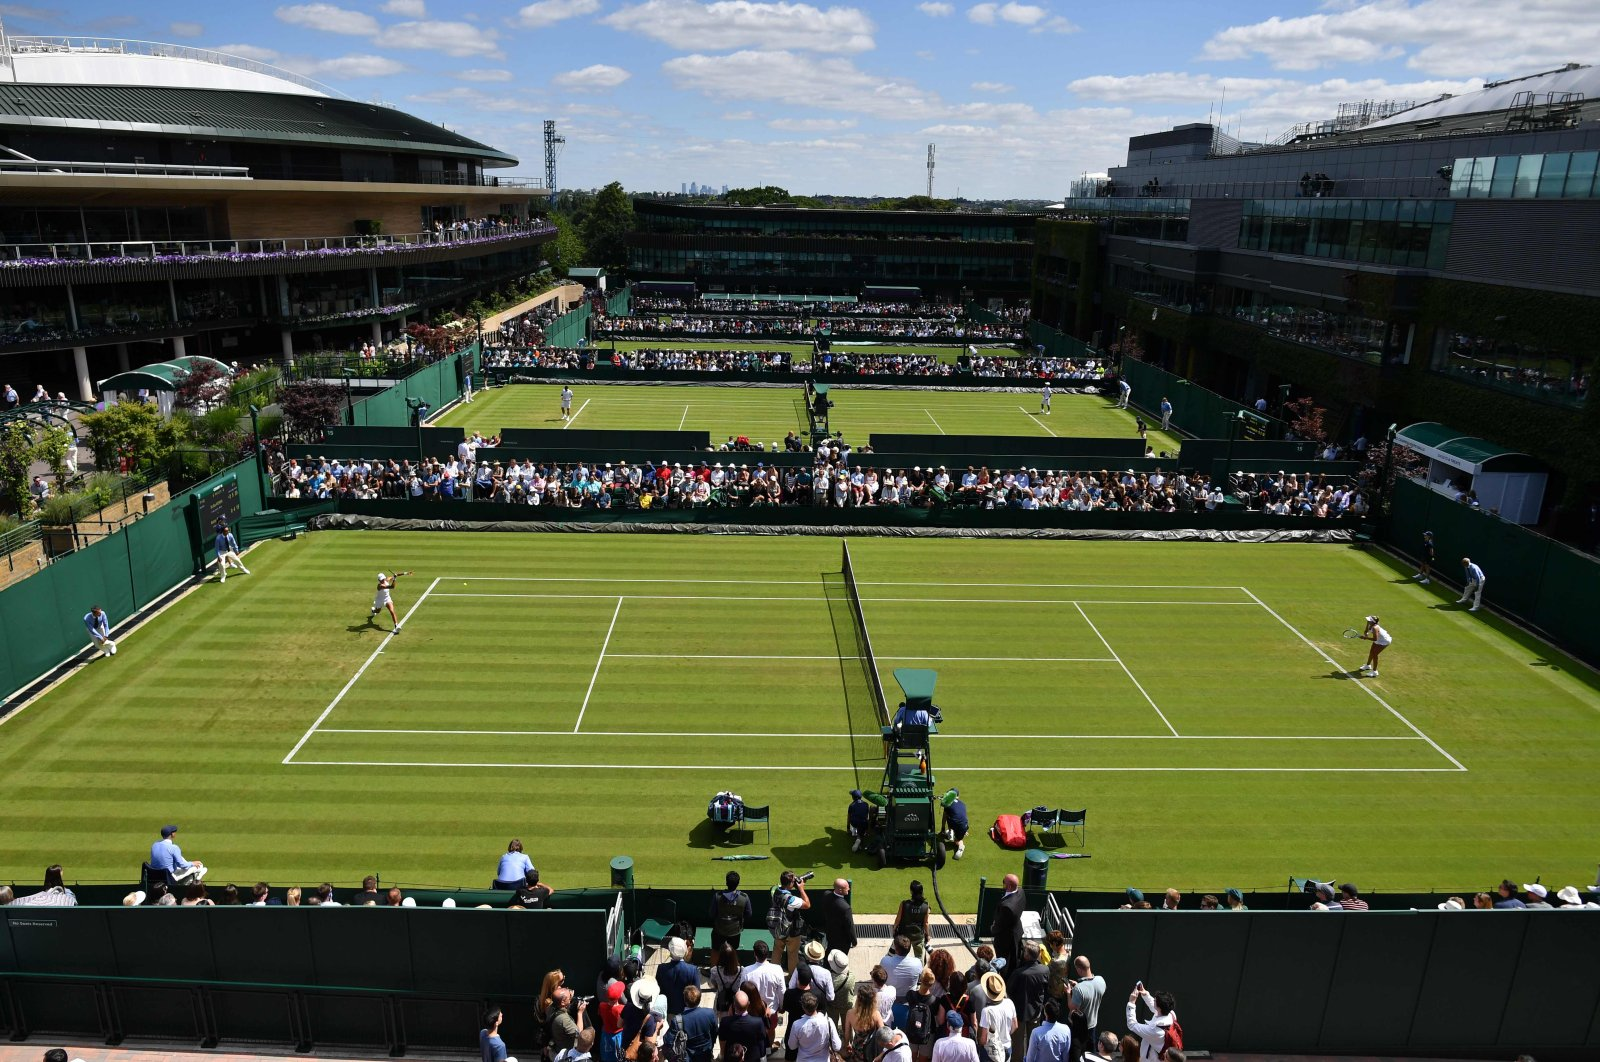 A tennis match is held on the outer courts at the All England Tennis Club in Wimbledon, southwest London, July 1, 2019. (AFP Photo)